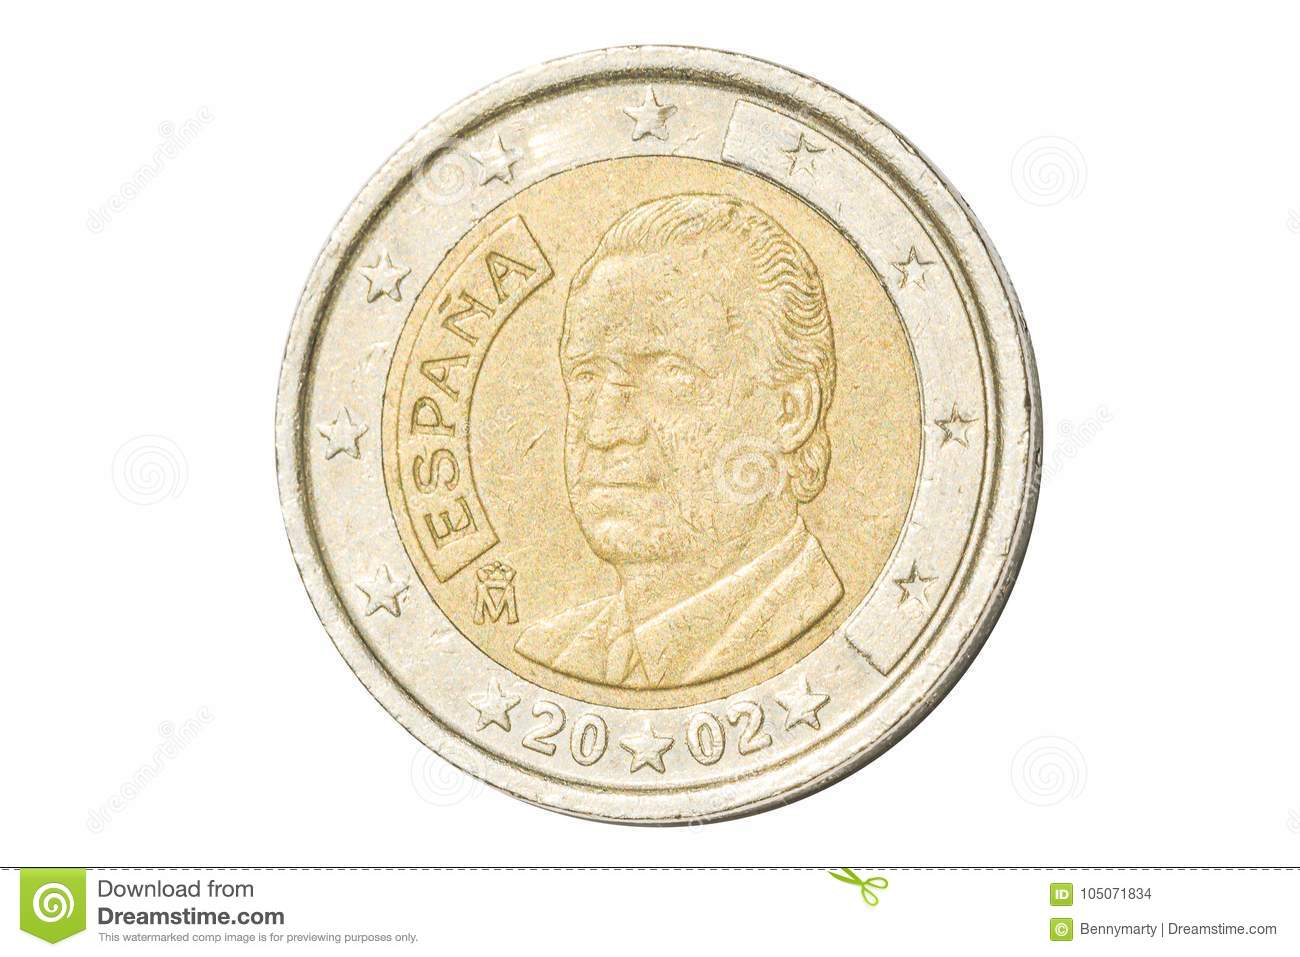 Spain Two Euro Coin Stock Photo Image Of European Isolated 105071834